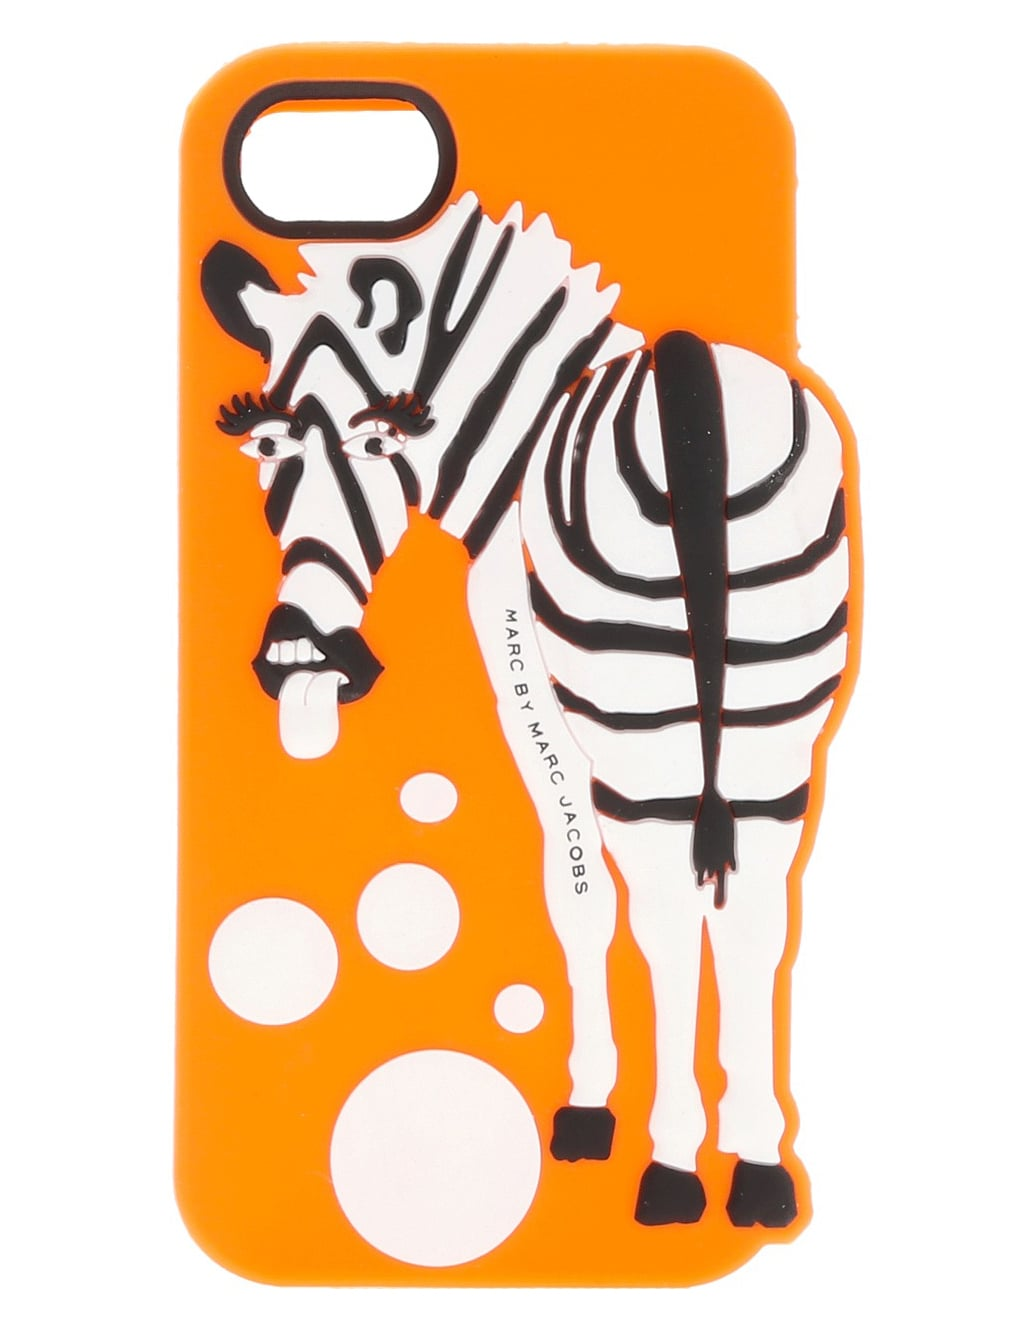 Because when you look down at your Marc by Marc Jacobs iPhone 5 case ($37, originally $48), what you really want to see is a zebra's behind.